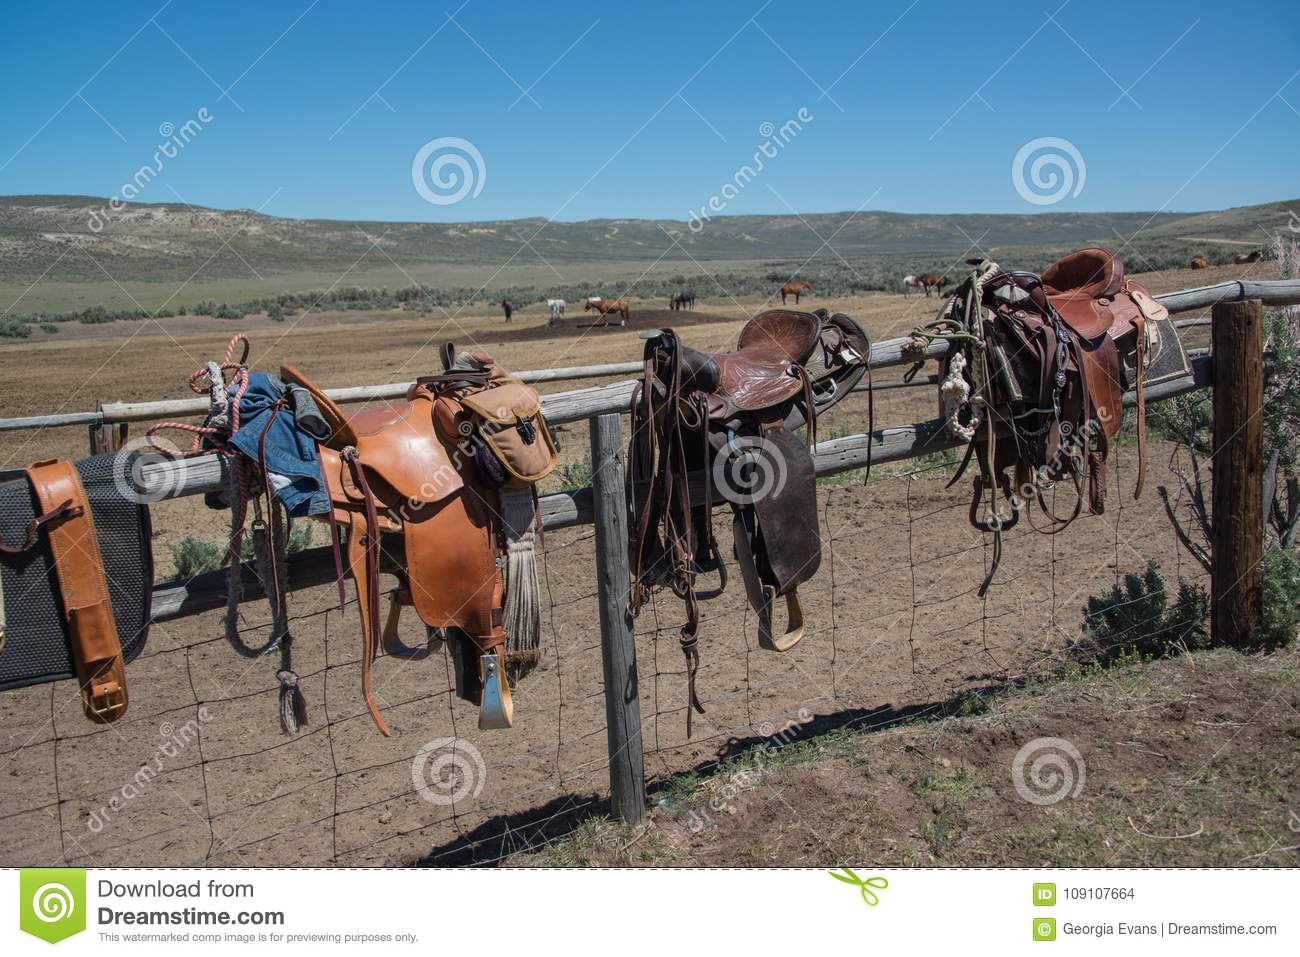 Western Riding Tack Saddles Bridles And Horse Blankets On Wooden Corral Post After A Trail Ride Stock Photo Image Of Americana Bridles 109107664